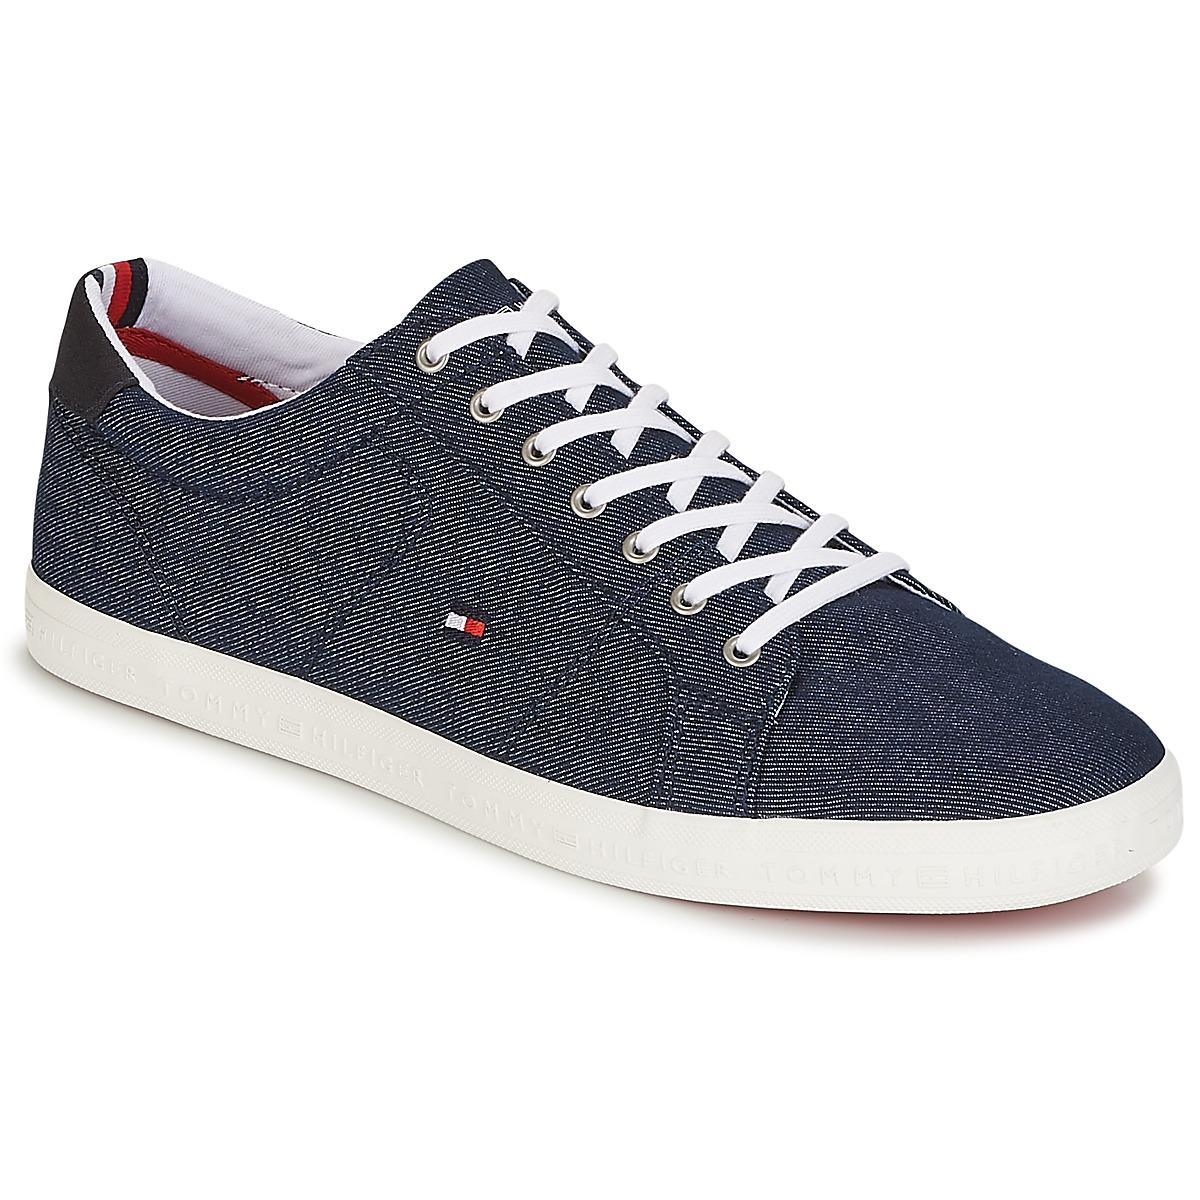 c6bd89fd544da Tommy Hilfiger Howell 1 Men's Shoes (trainers) In Blue in Blue for ...